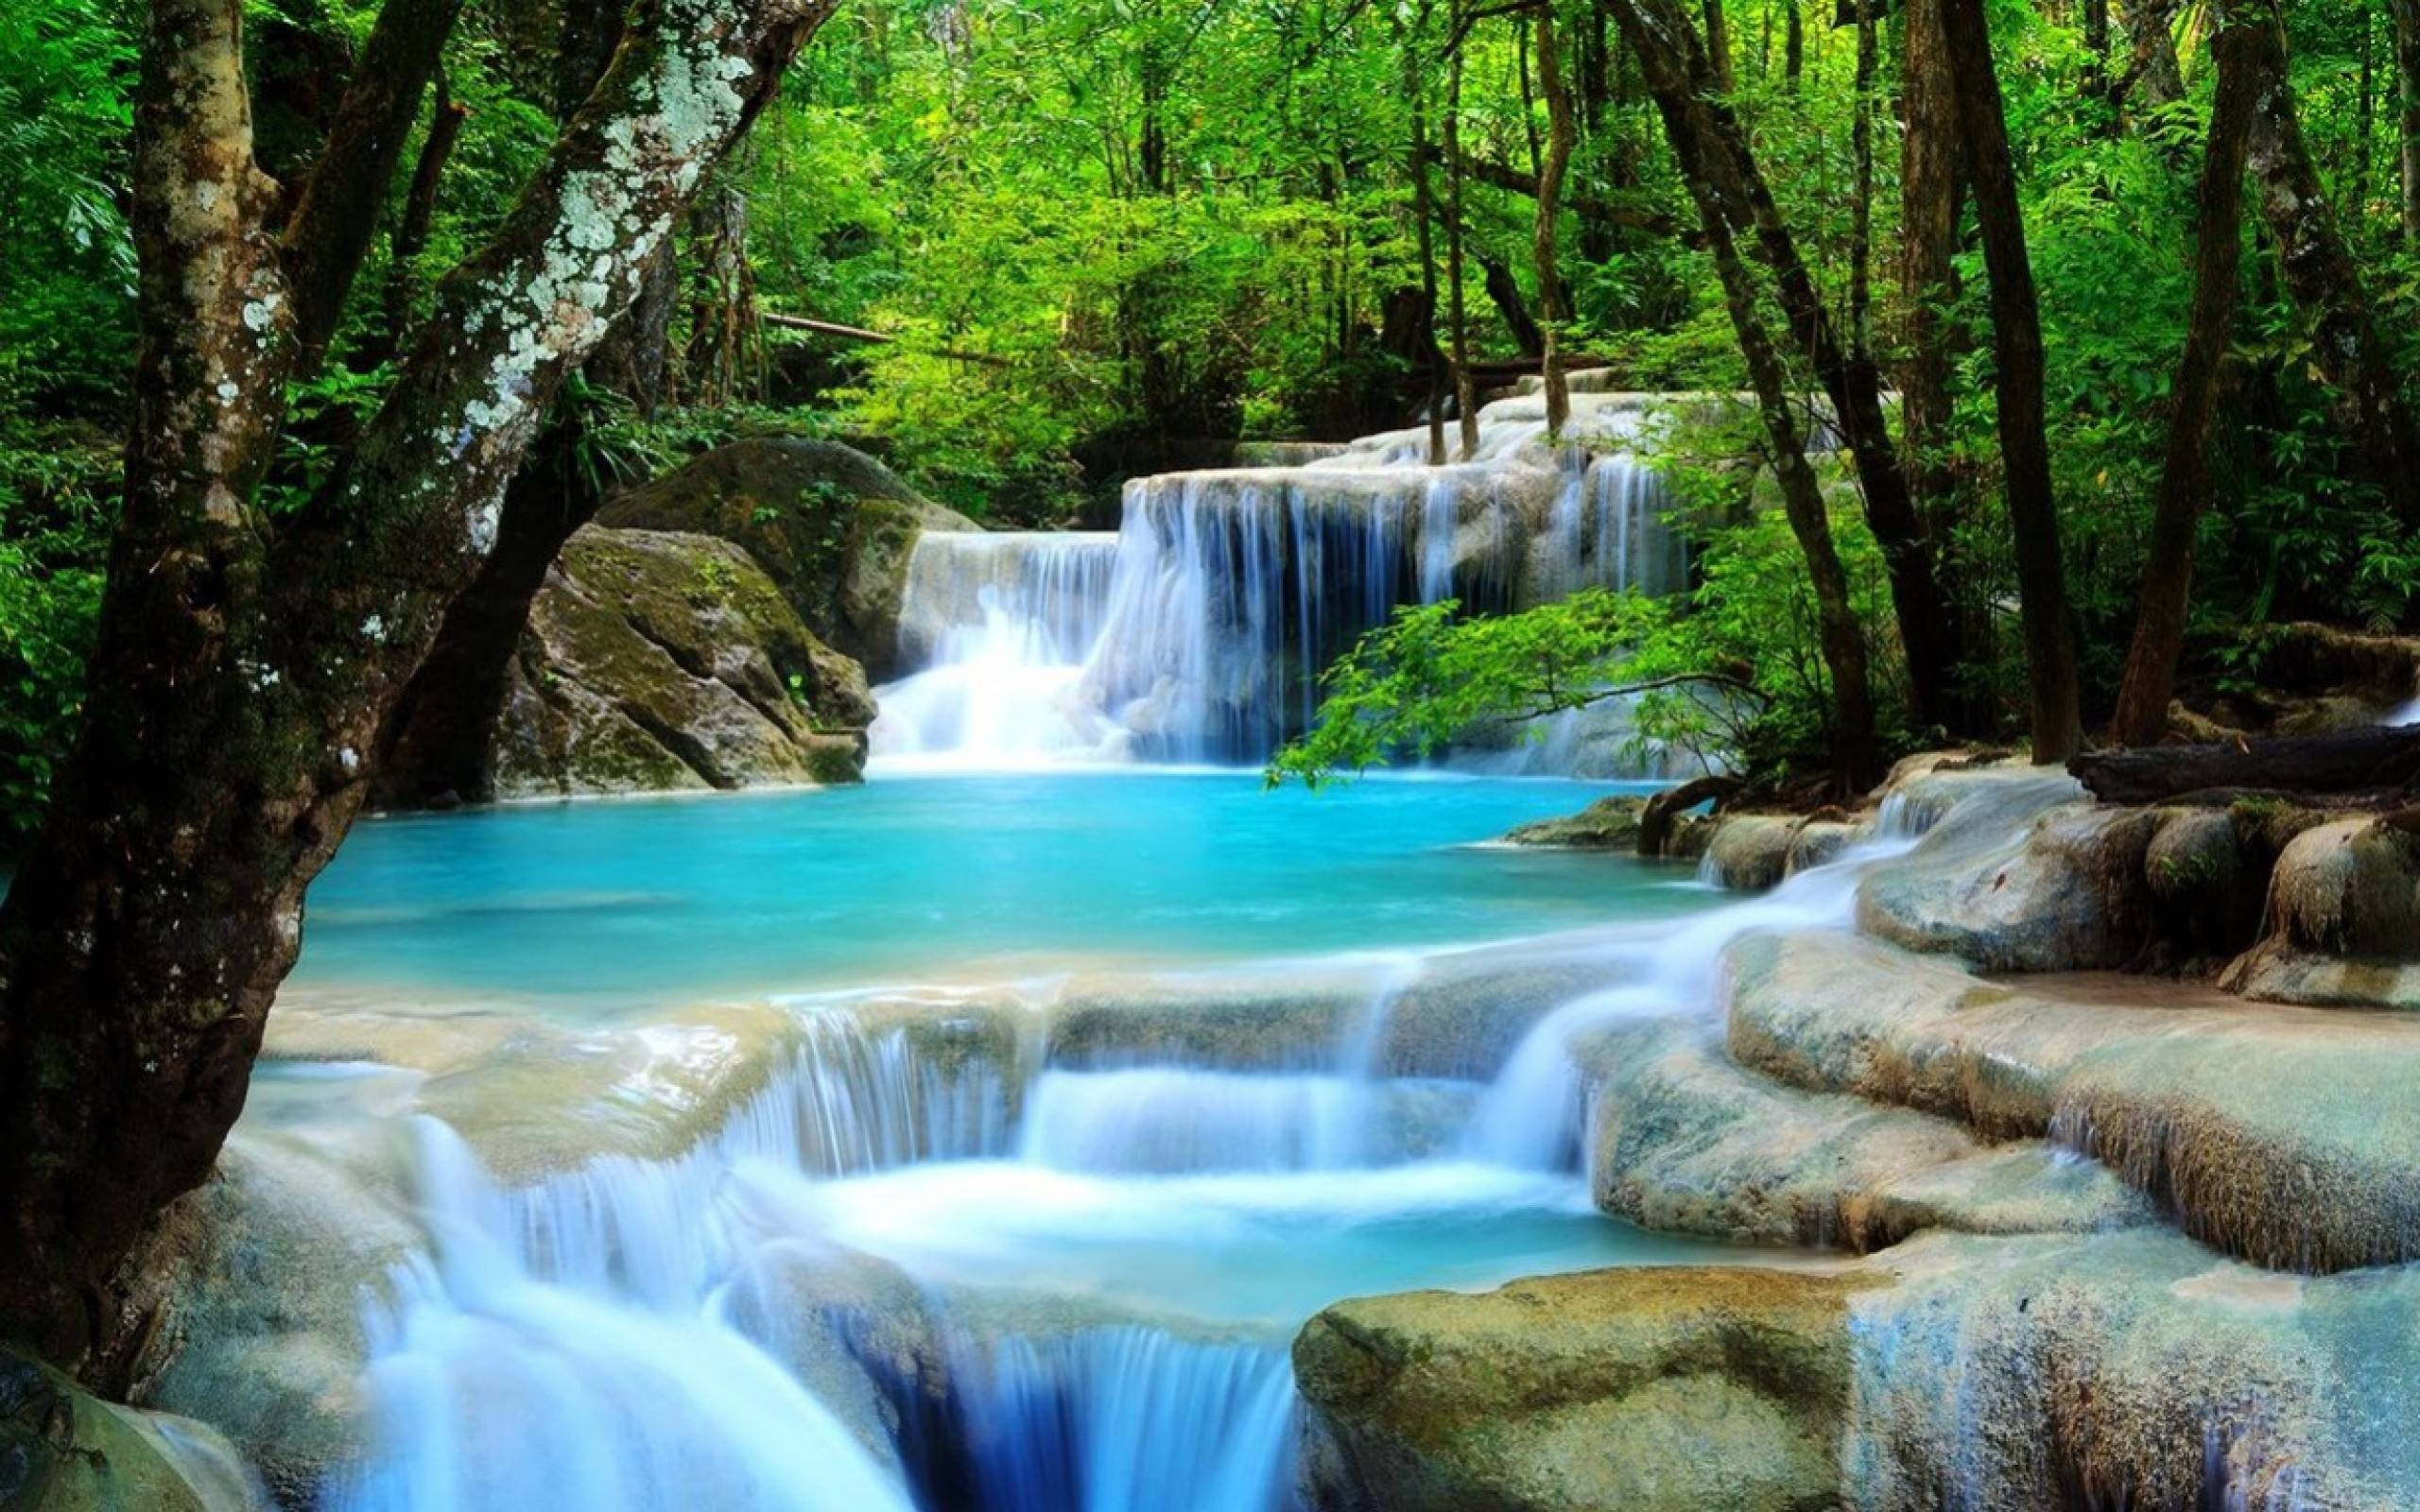 2560x1600 Waterfall Image For Desktop Wallpaper 2560 x 1600 px 1.2 MB rainforest  tropical natures flowers beautiful